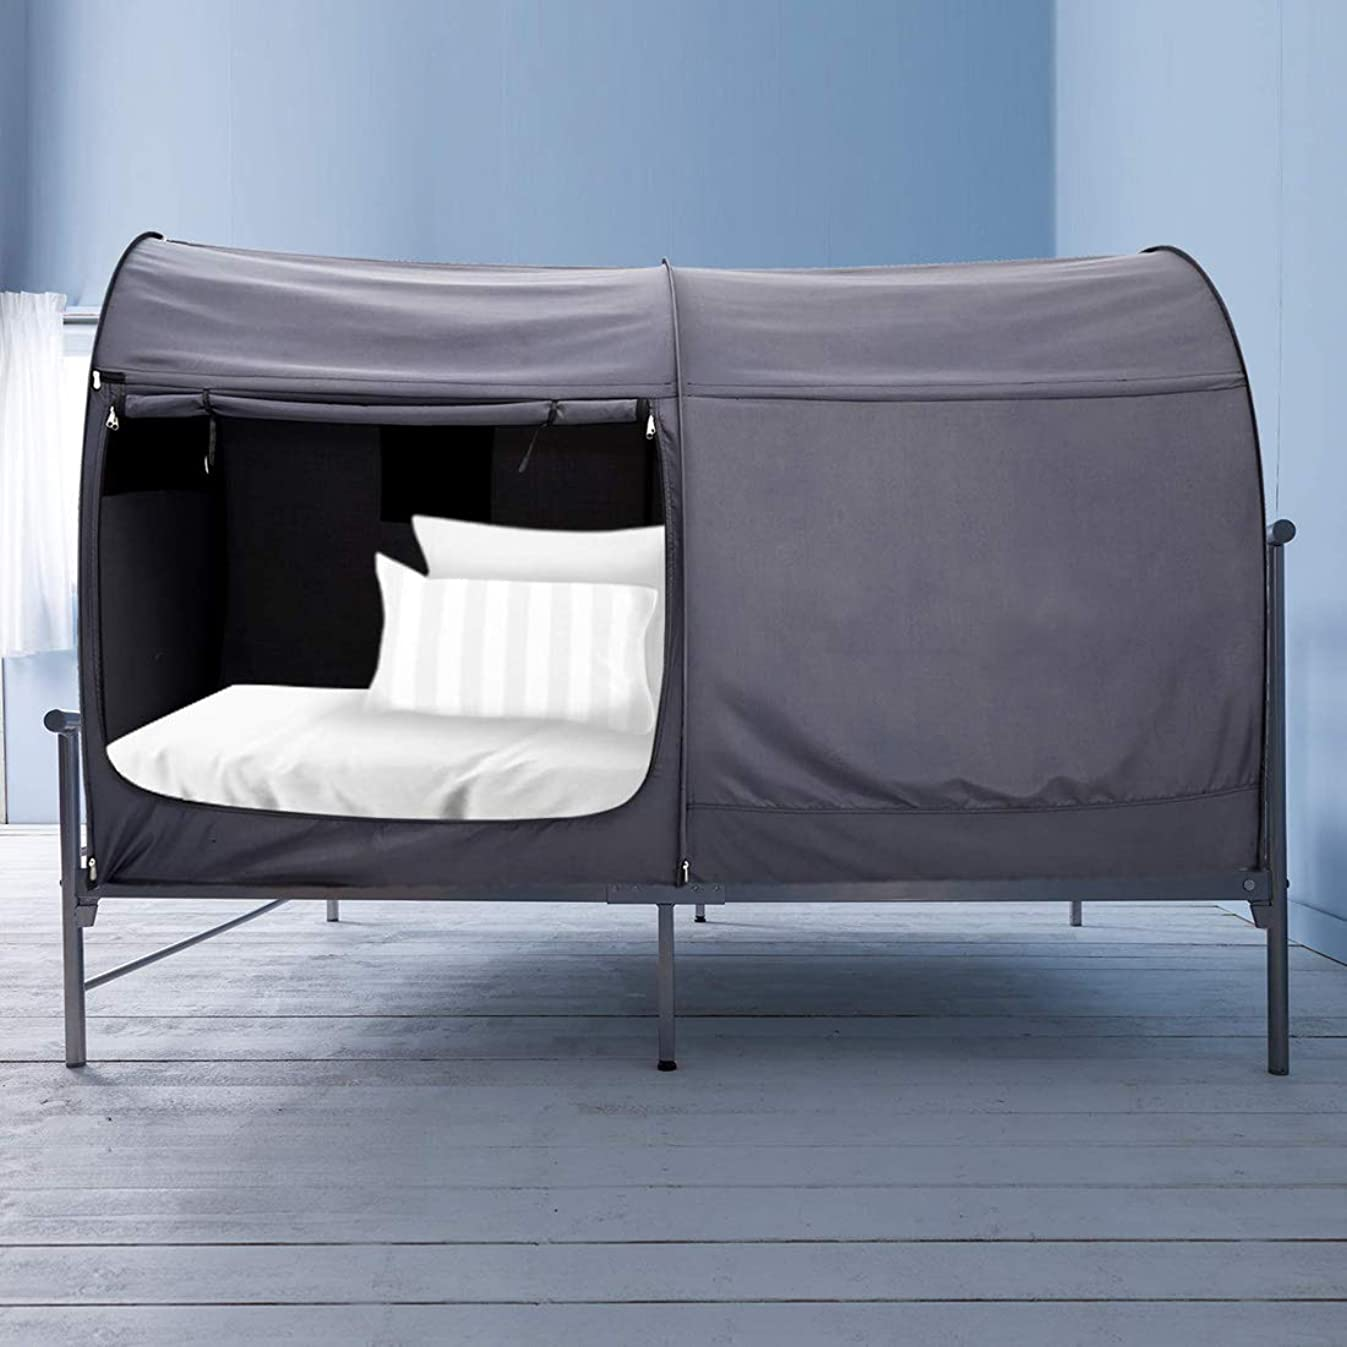 Alvantor Bed Canopy Bed Tents Dream Tents Privacy Space Twin Size Sleeping Tents Indoor Pop Up Portable Frame Curtains Breathable Grey Cottage (Mattress Not Included) Reducing Light